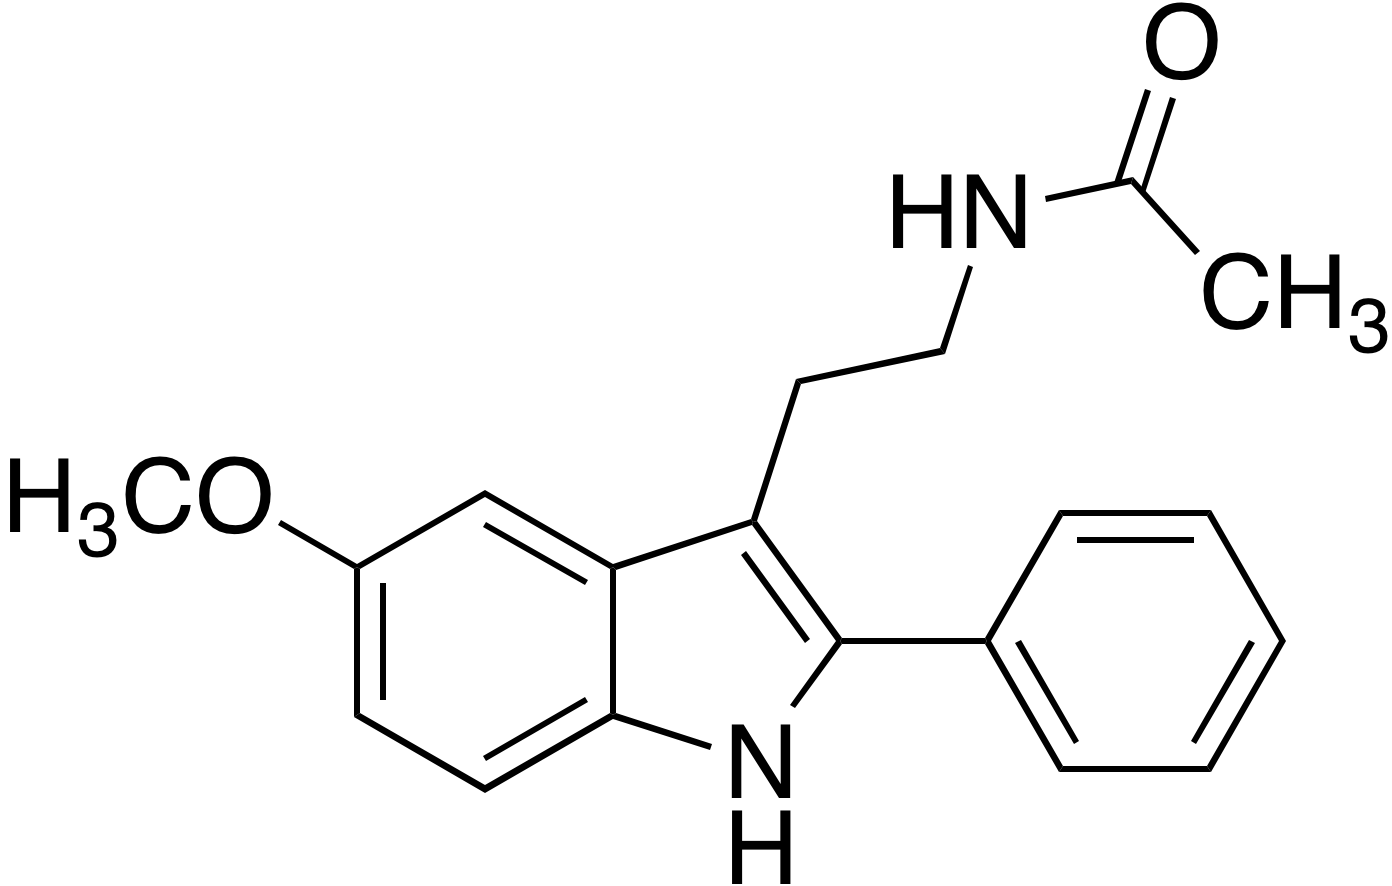 2-Phenylmelatonin